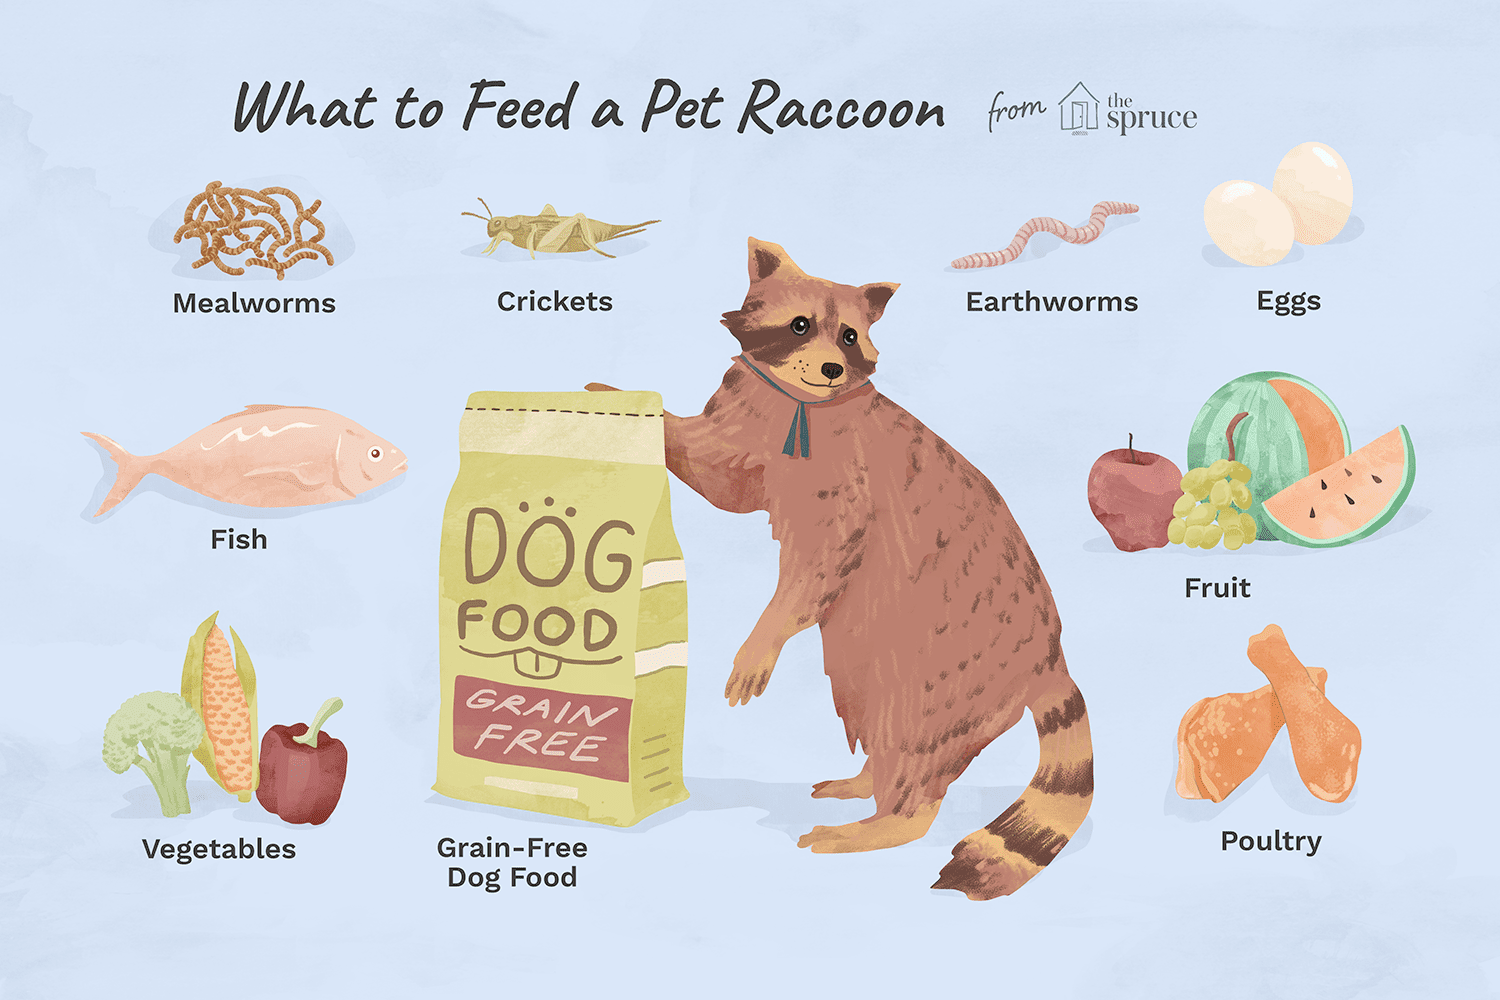 The Best Diet for a Pet Raccoon